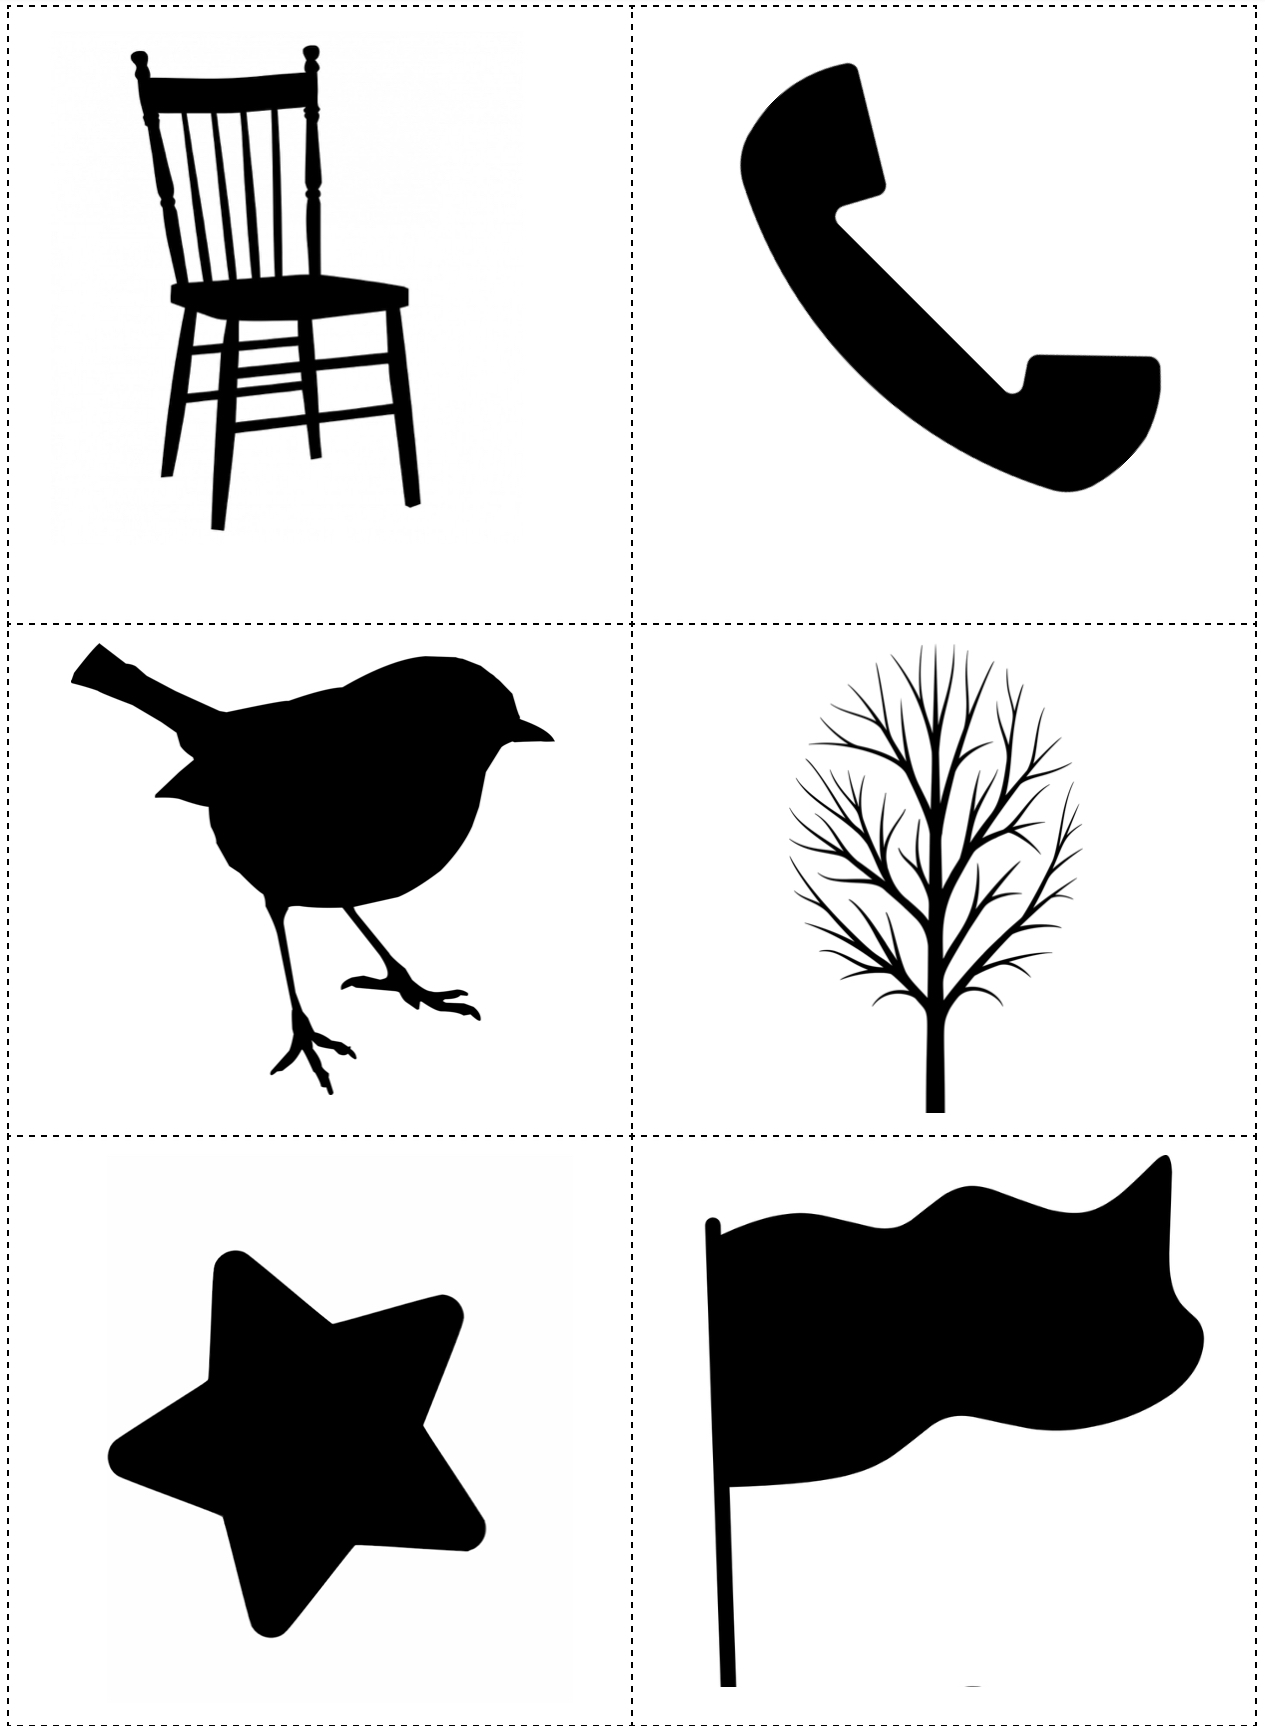 Shadows of objects that don't begin with sh